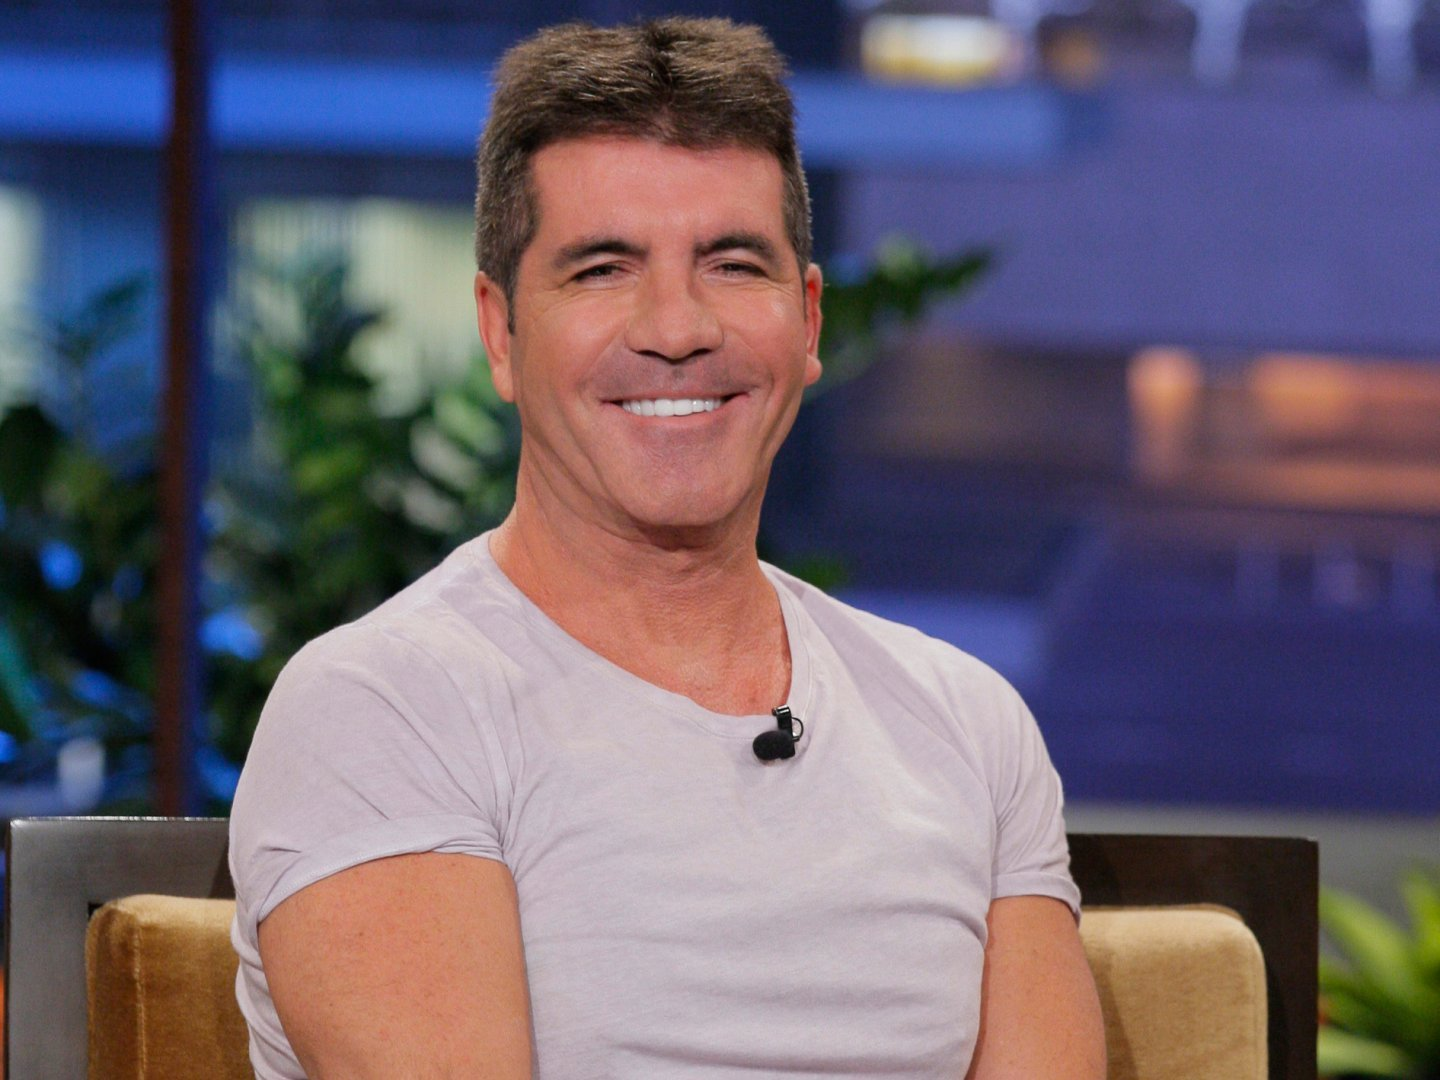 Simon-Cowell-Tight-tshirt-43